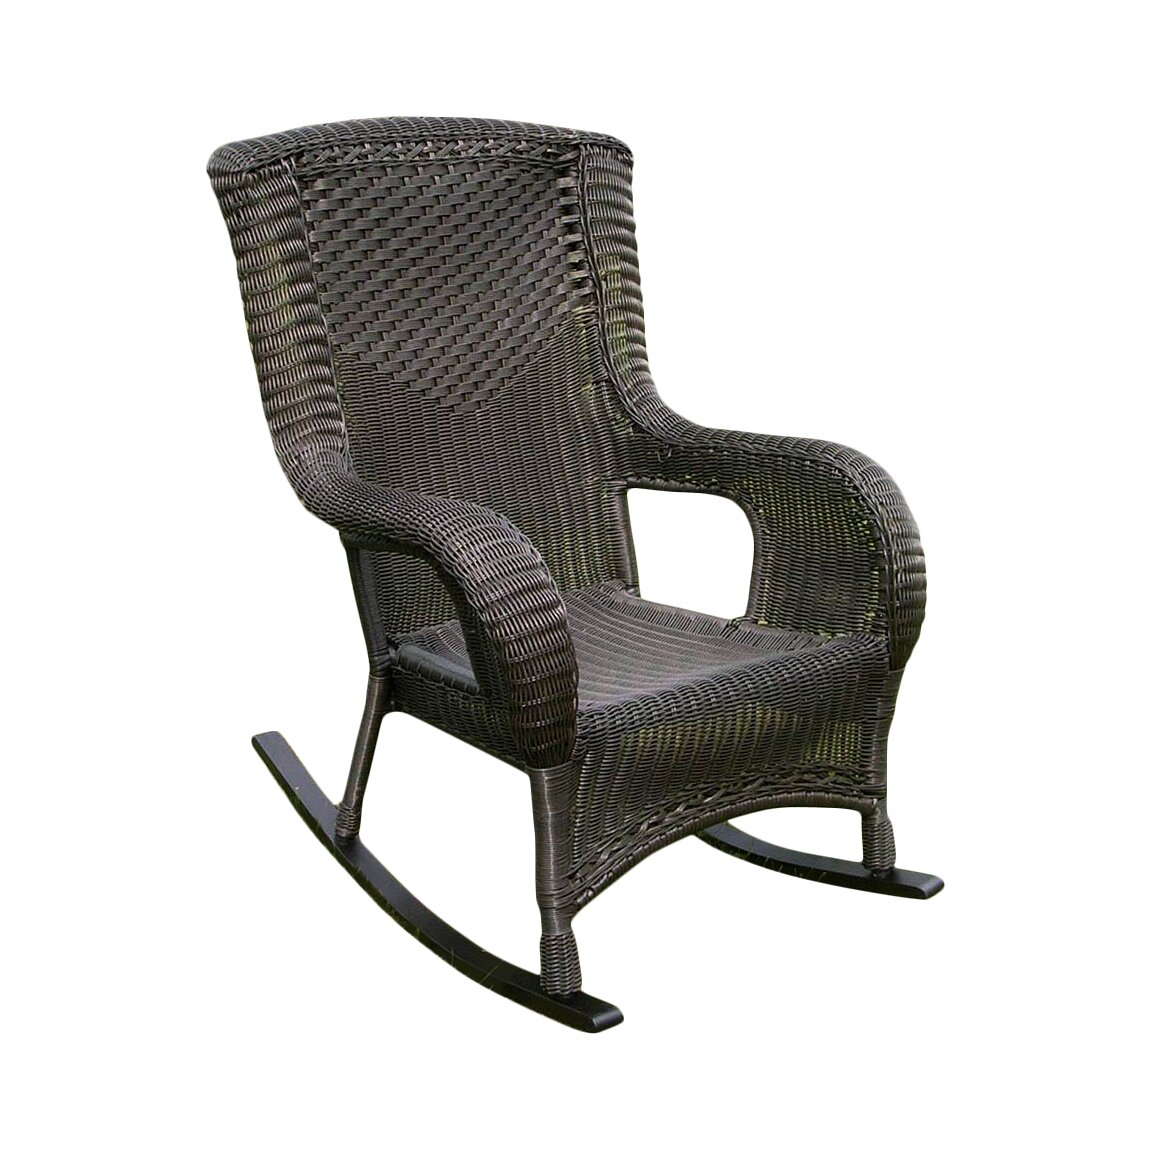 Things You Should Know About V1 Gaming Chair By X Rocker Pro additionally Royalty Free Stock Photo White Wooden Rocking Chair Image284965 in addition Fnaf 4 likewise 2906 furthermore International Caravan San Tropez Wicker Resin Aluminum High Back Patio Rocking Chair INC1941. on rocking game chair